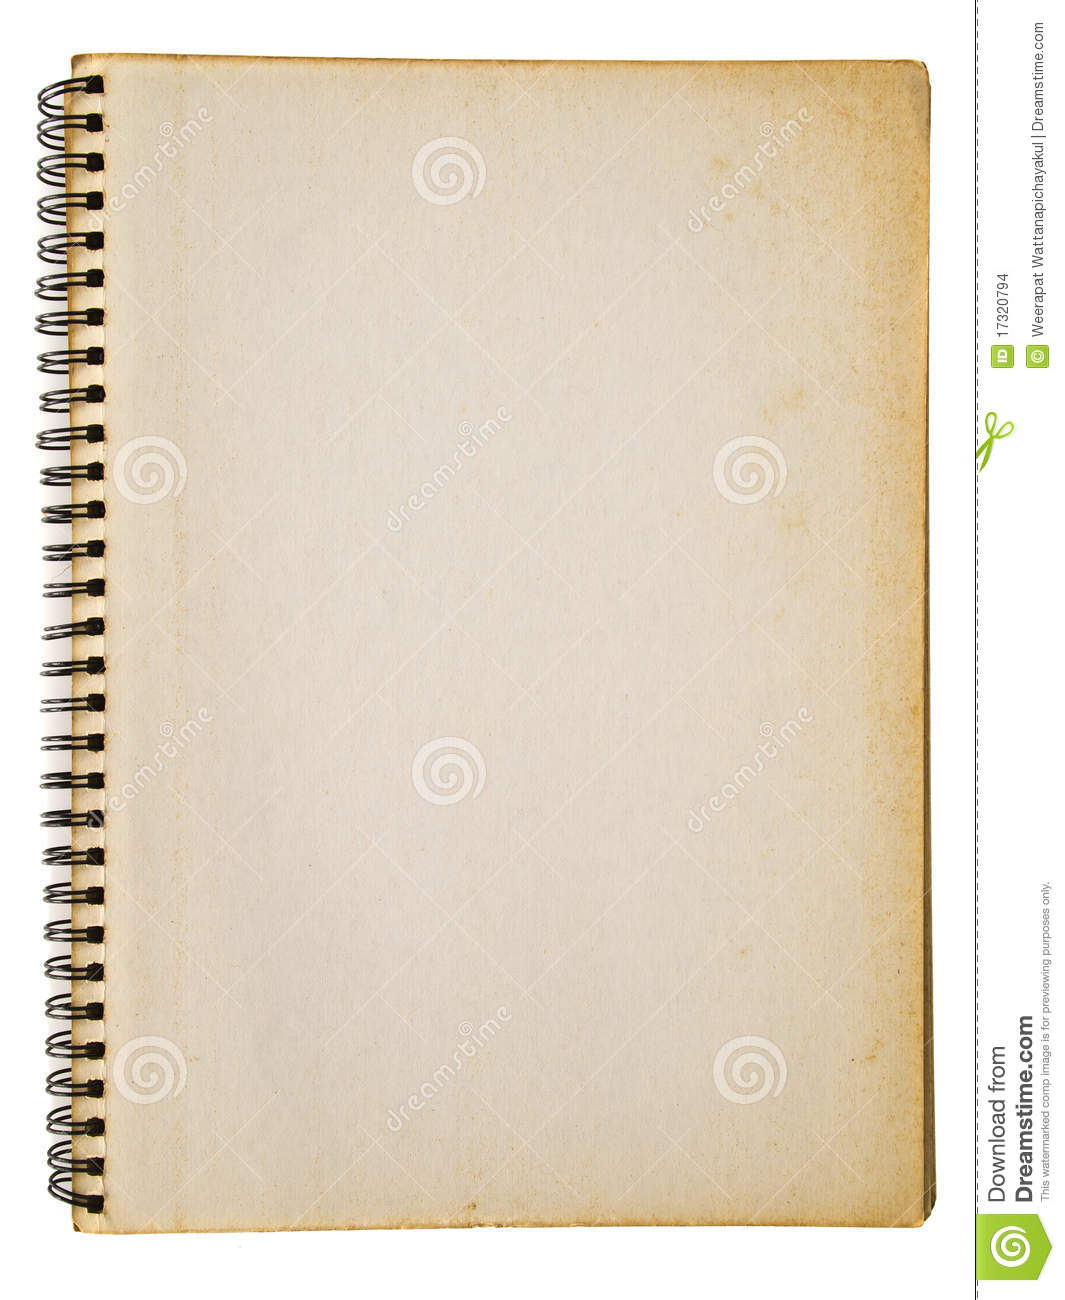 Notebook Cover Background : Opened old notebook stock photo image of business copy